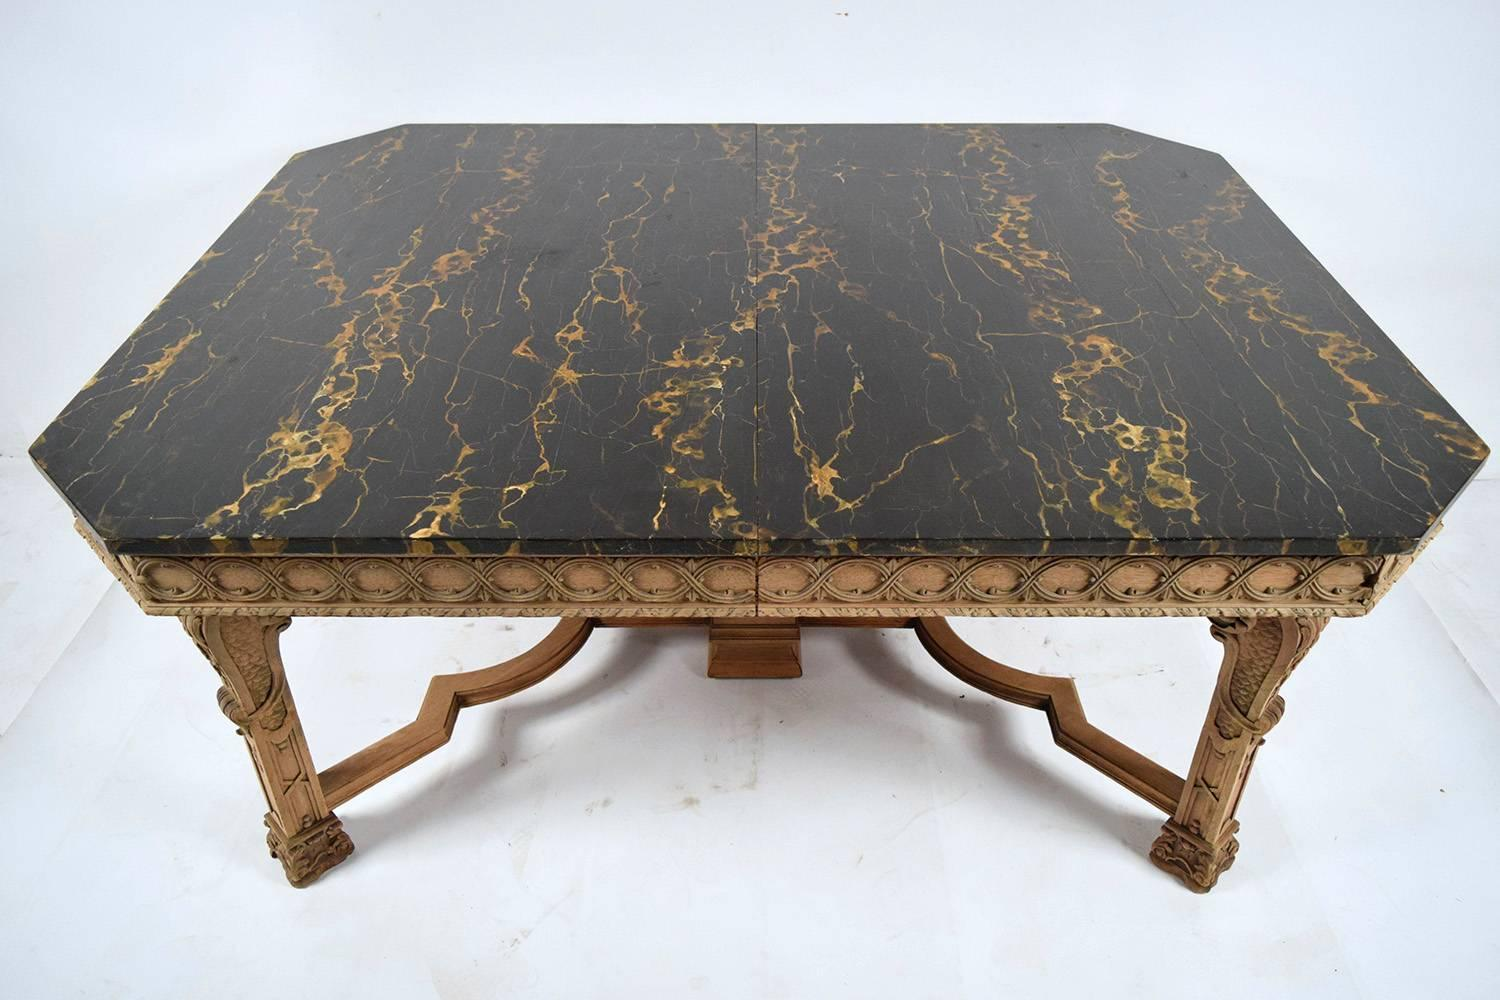 Antique Regency Style Dining Table With Faux Marble Top